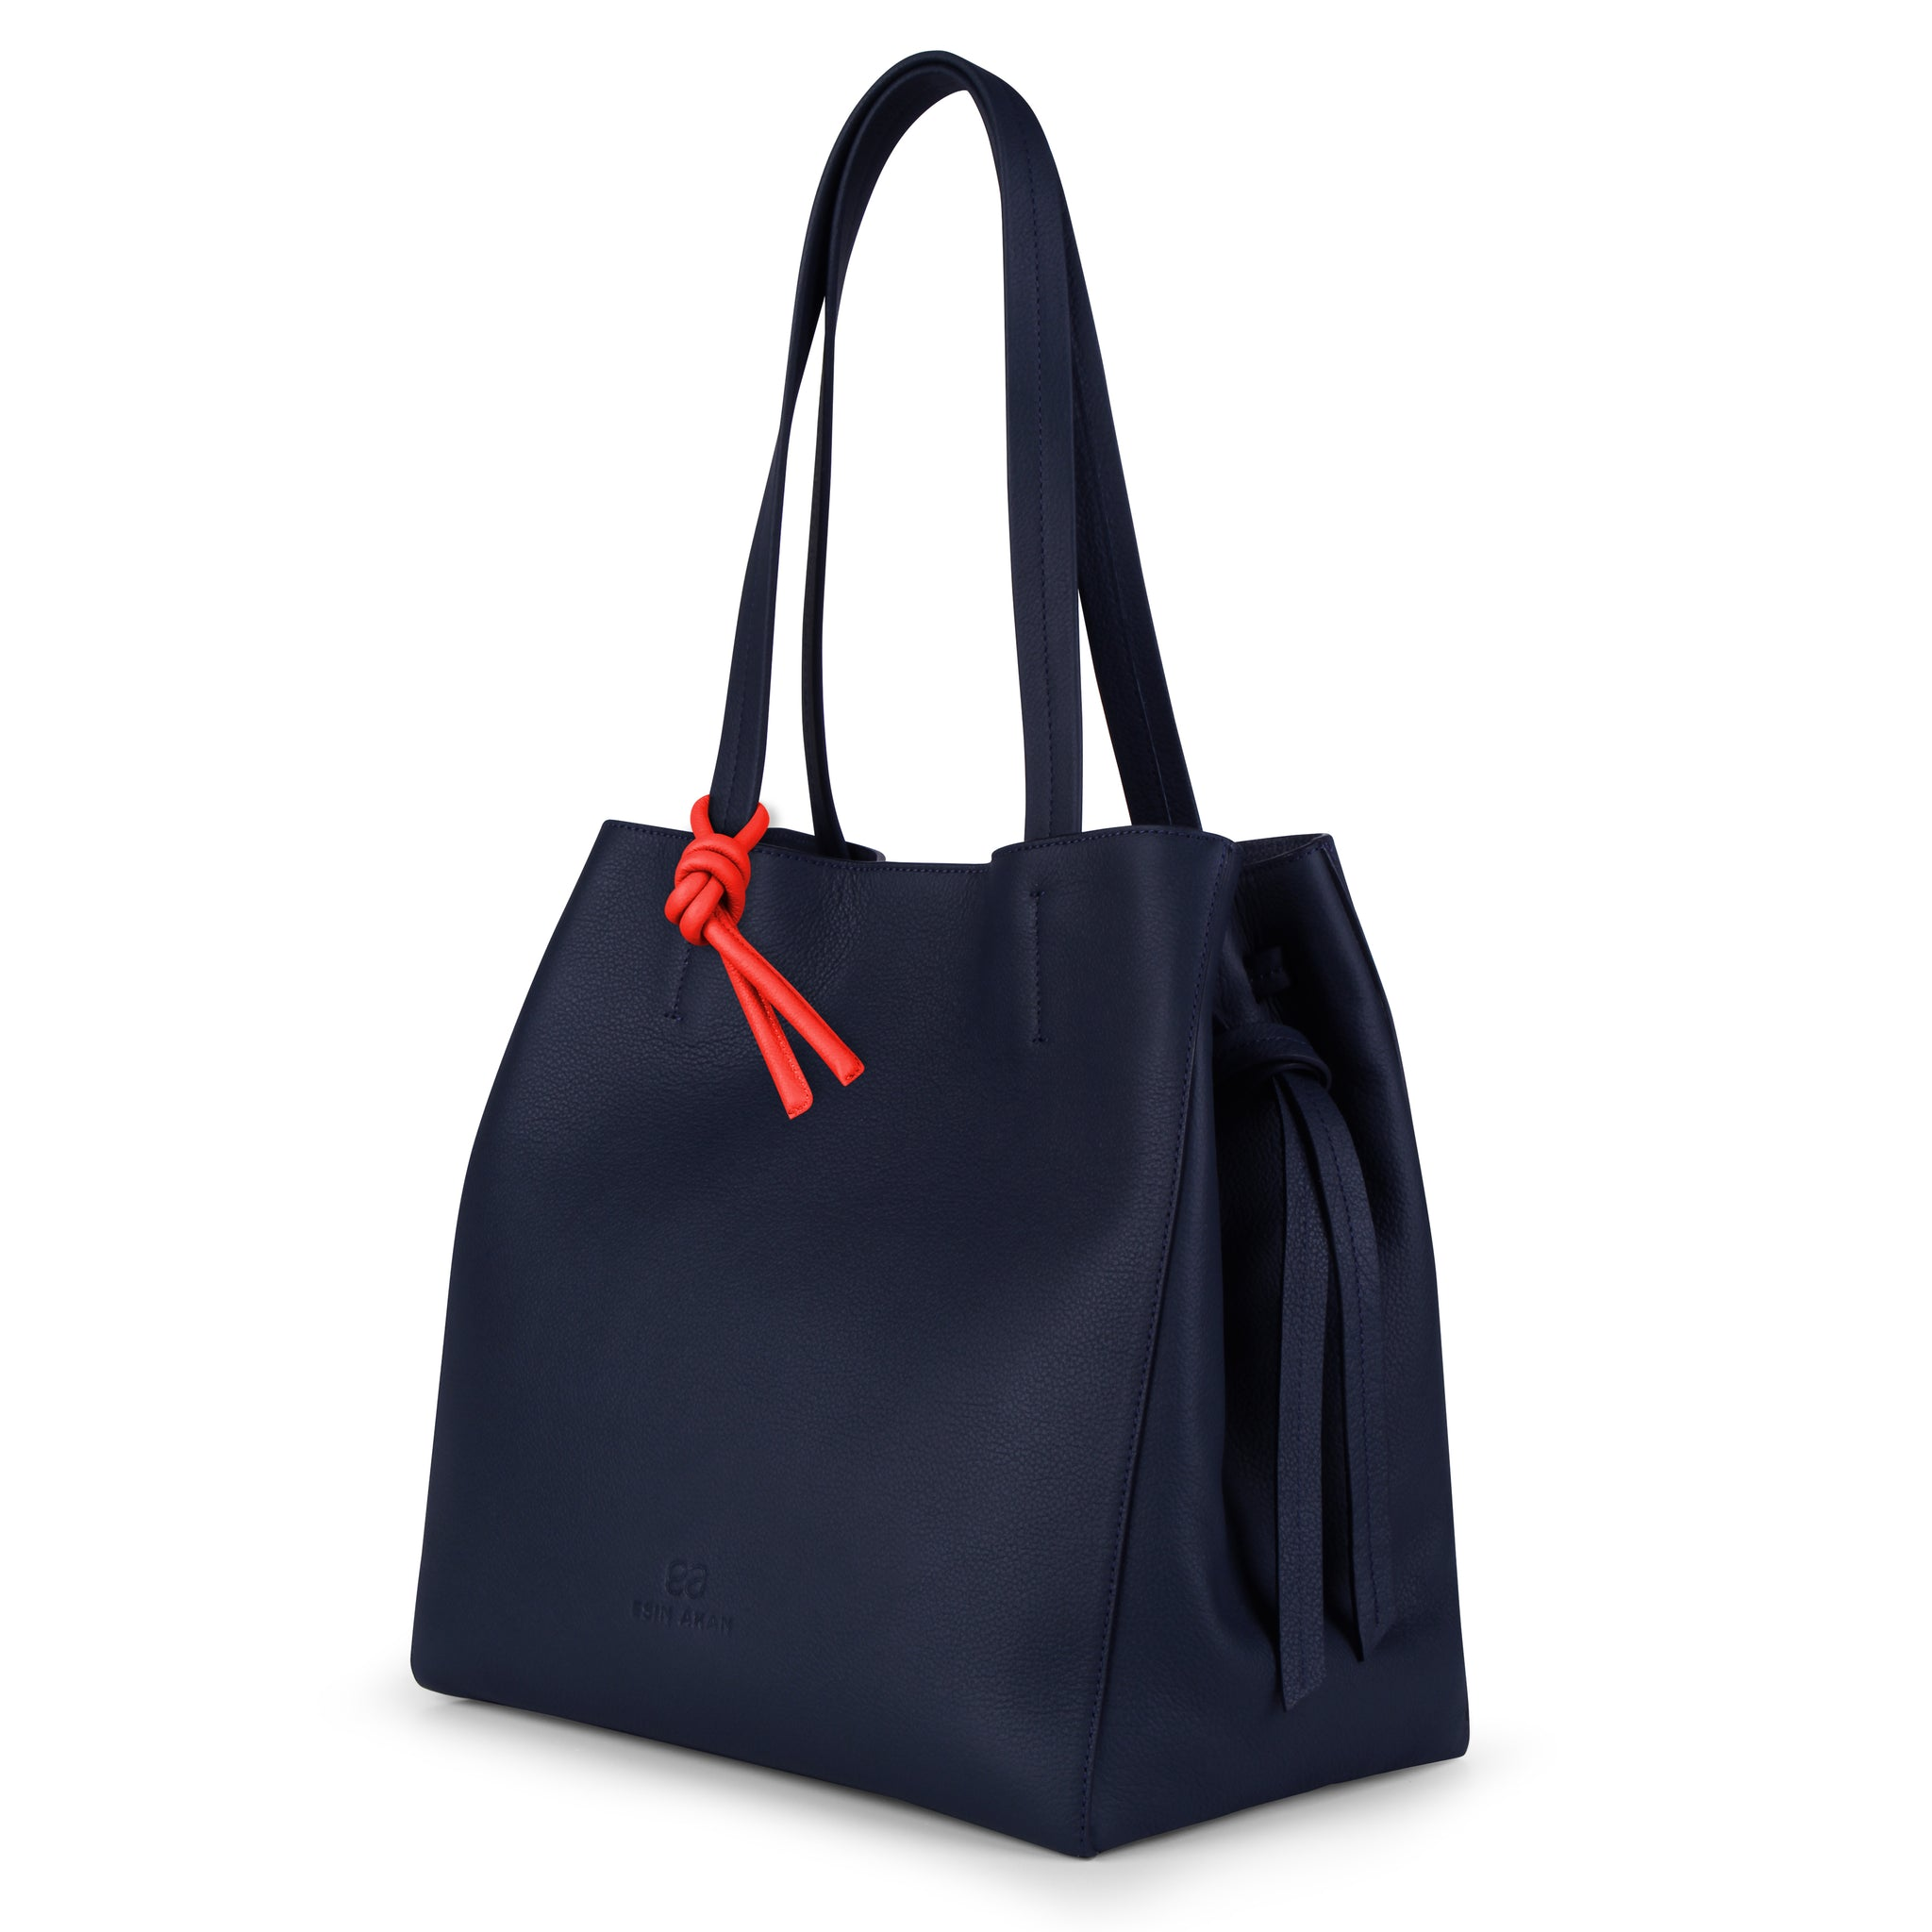 An expandable leather tote bag for women in navy and red that could be used as a travel bag, side image.